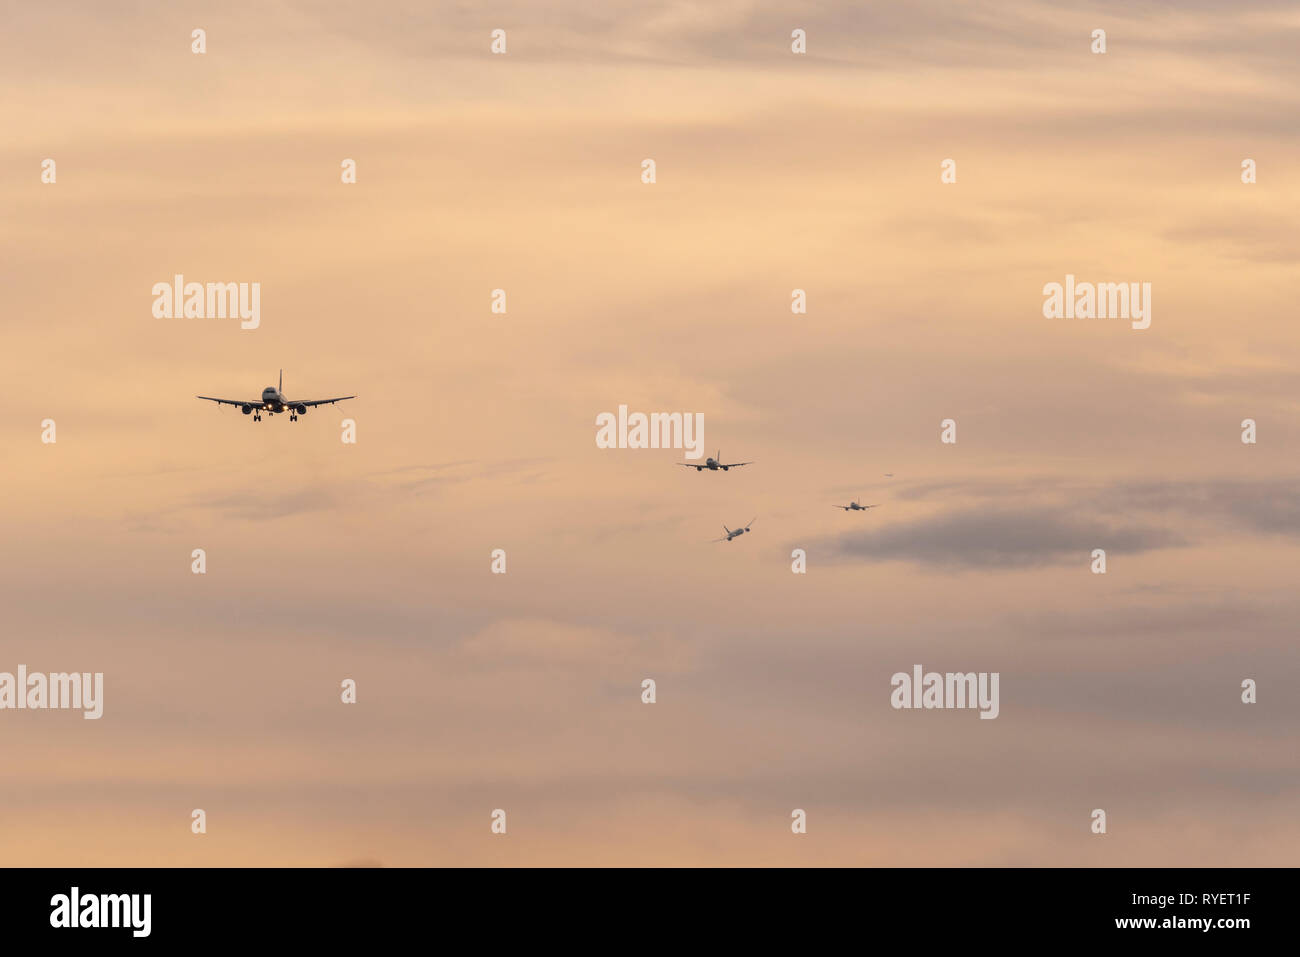 Queue of planes on final approach to land at London Heathrow Airport, London, UK at dawn. Landing airliners. Busy finals for landing at airport - Stock Image